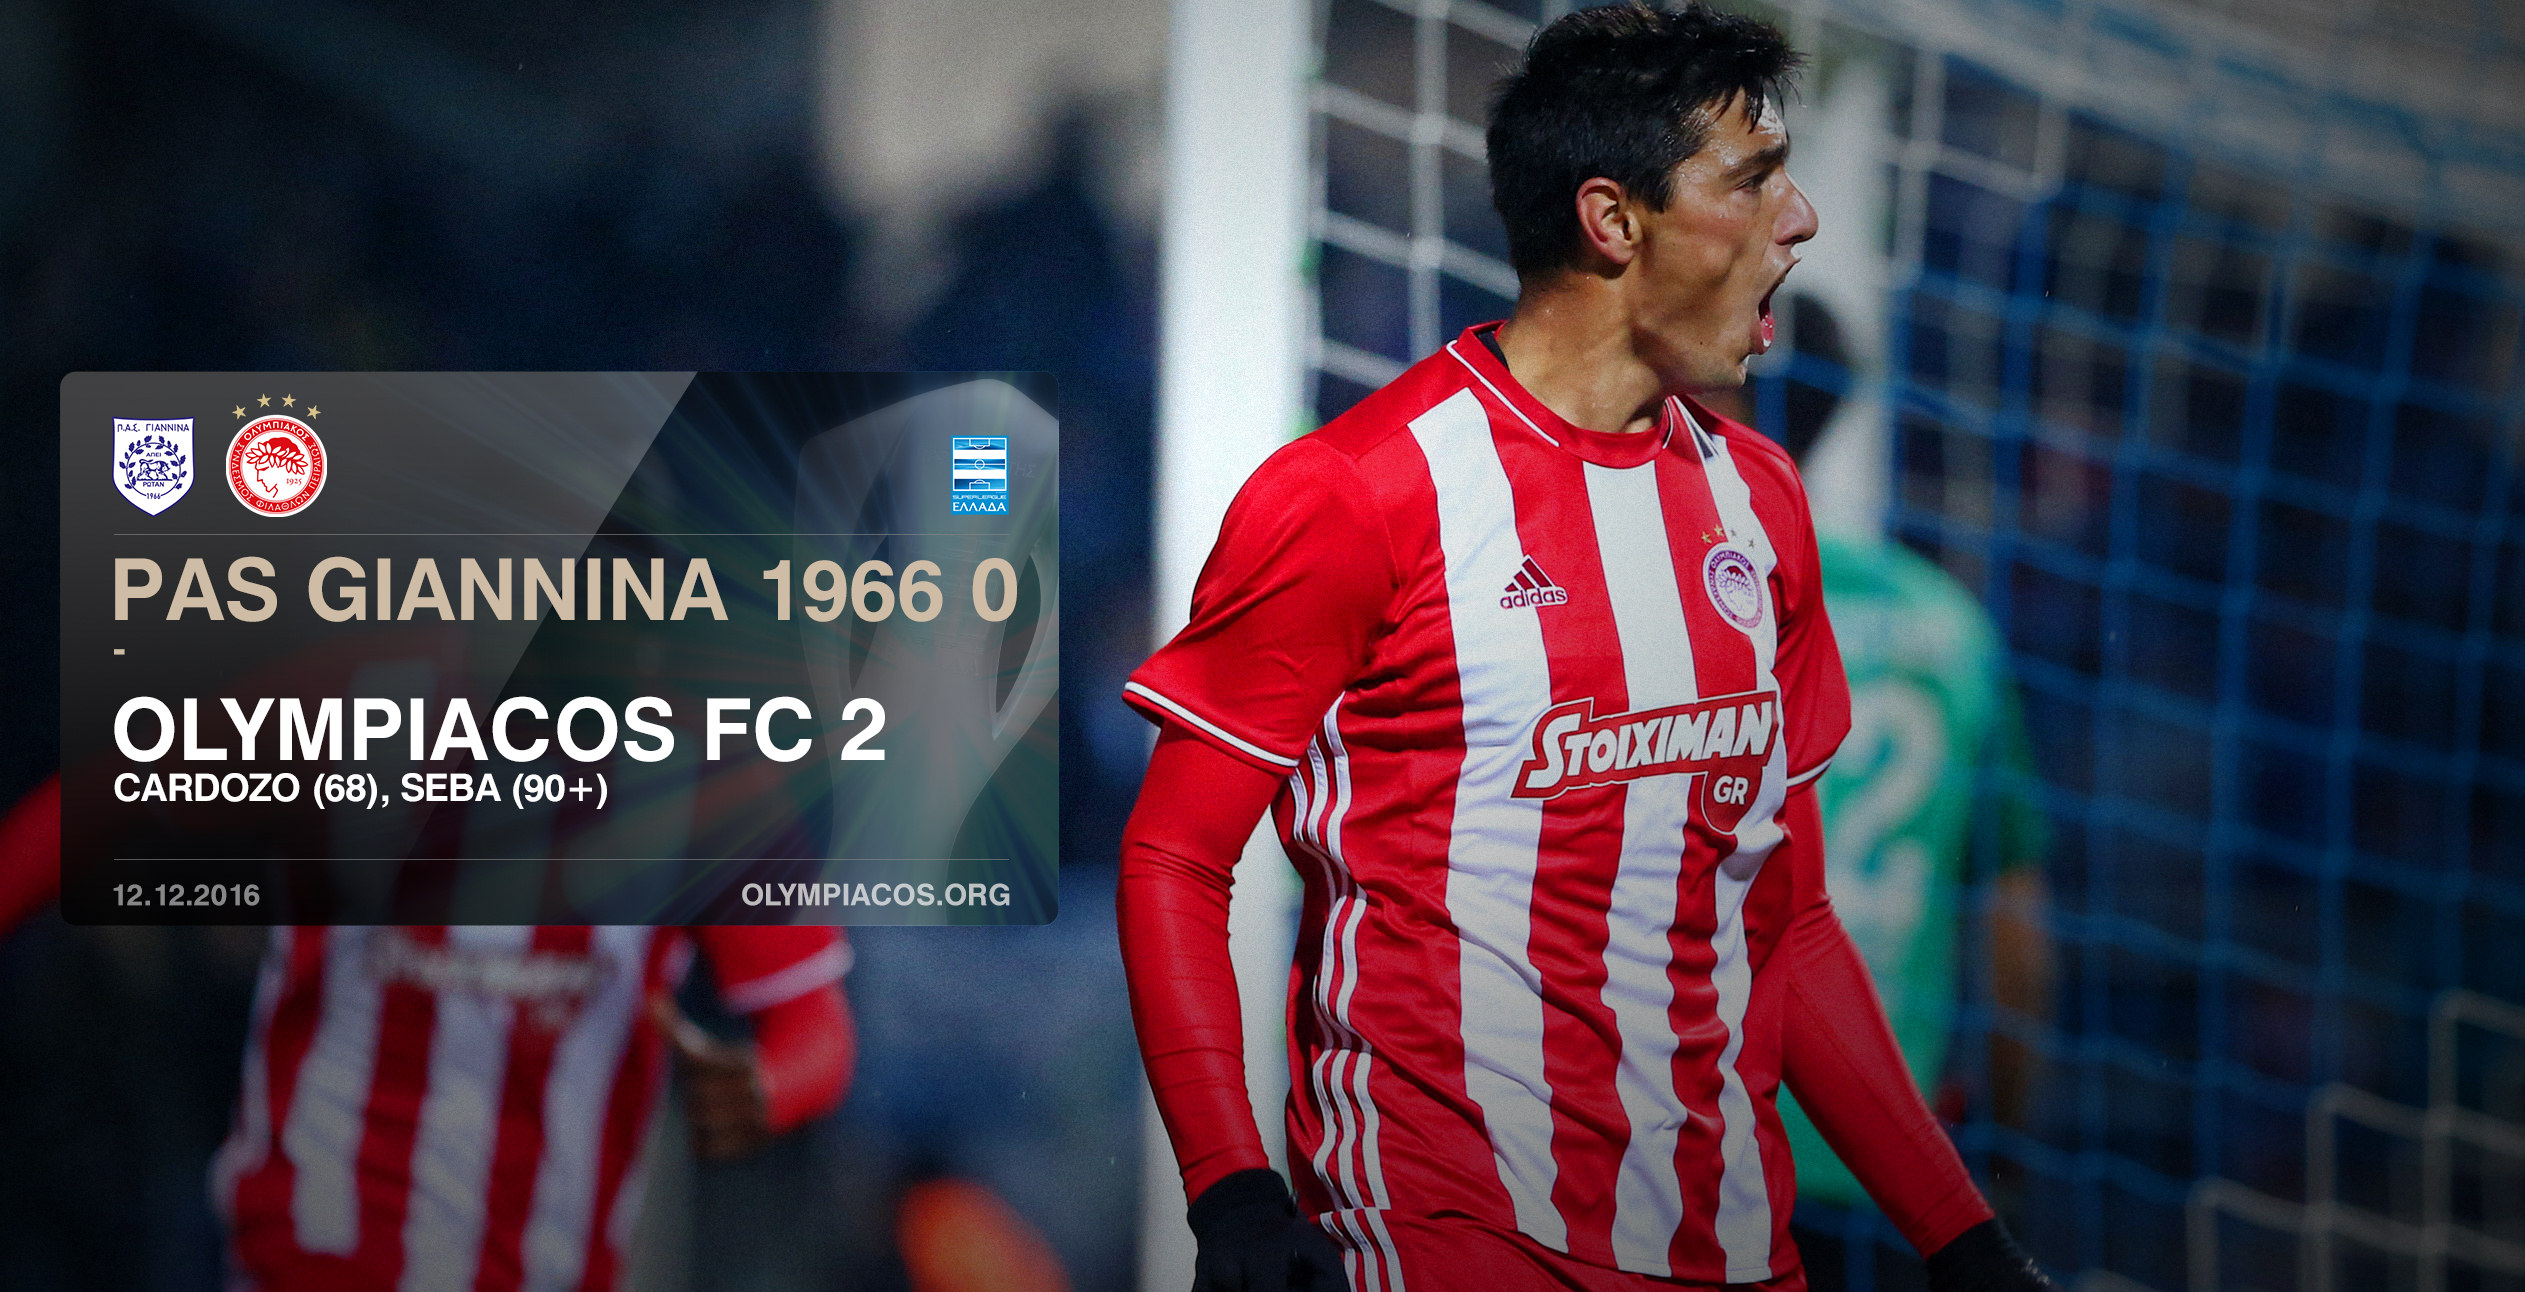 Goal made of 44-karat gold in Ioannina